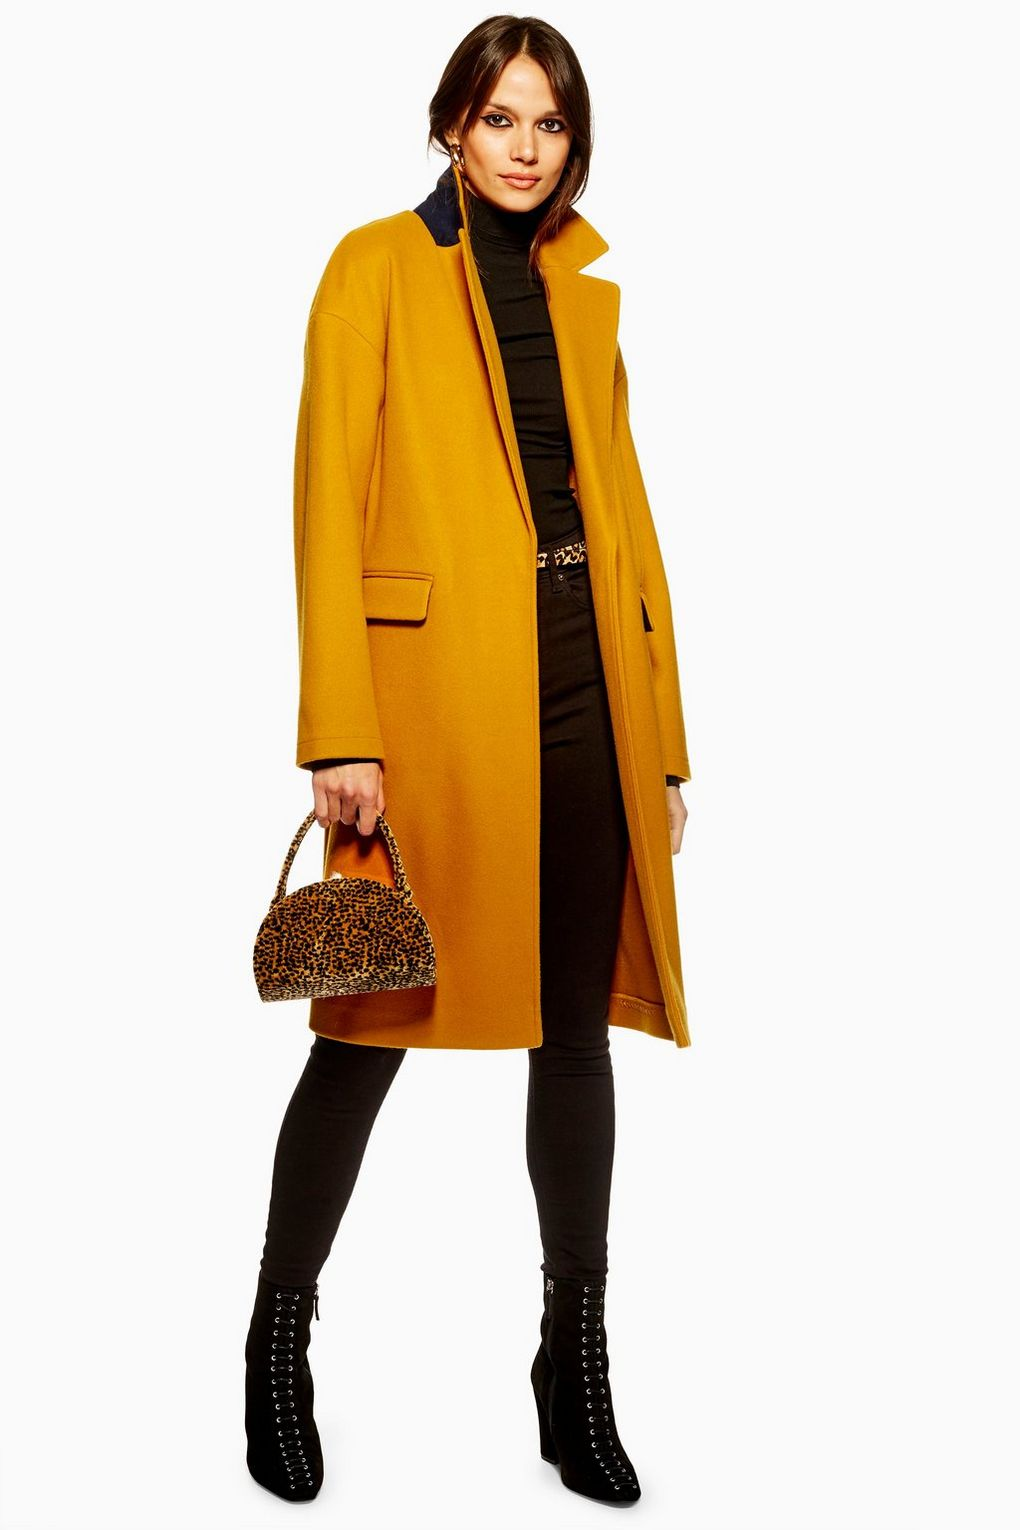 Relaxed Coat - £65